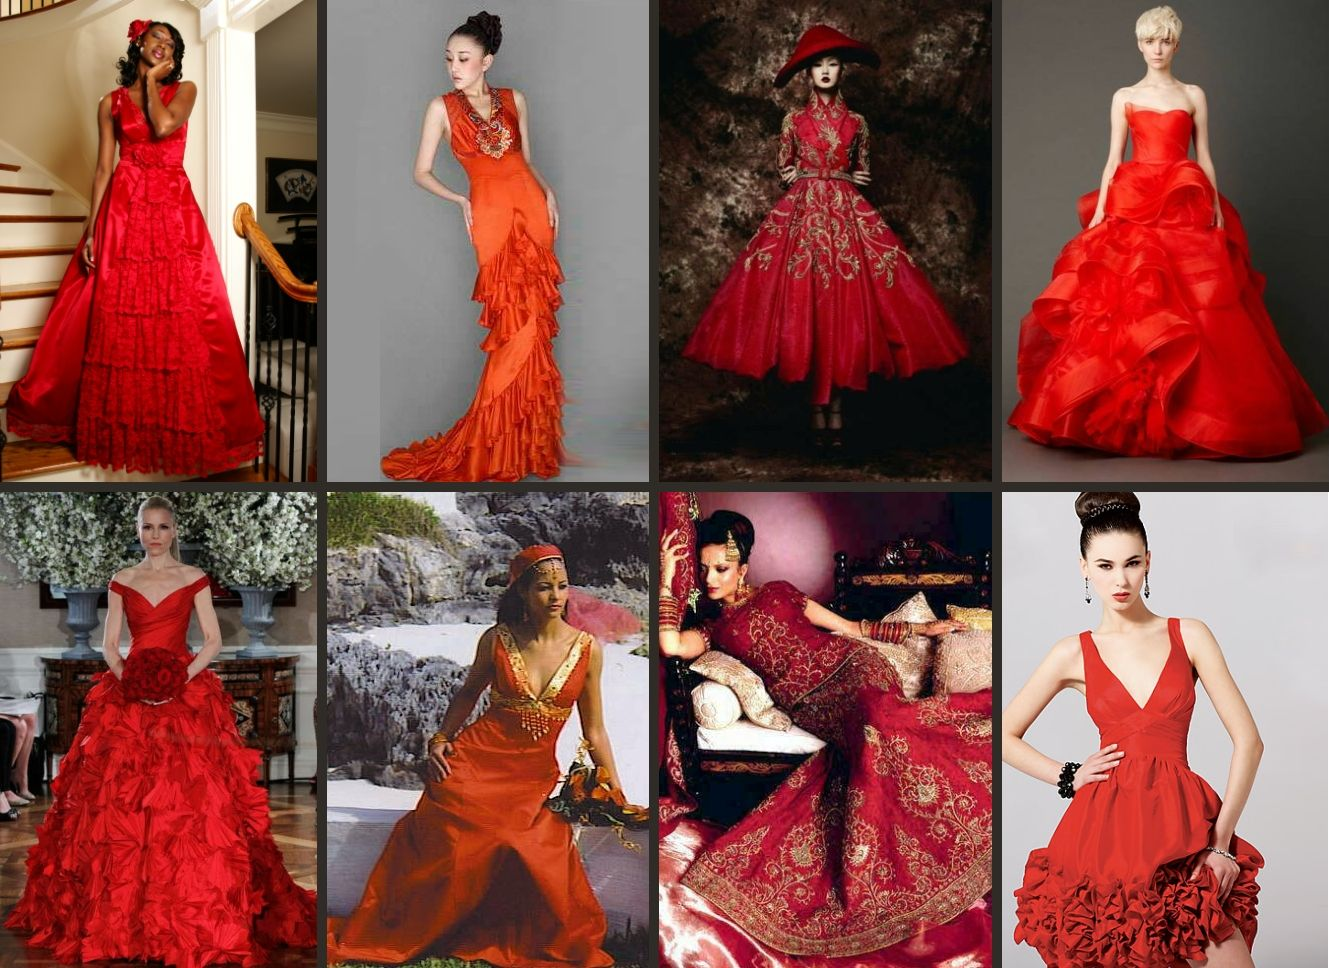 And the bride worered red wedding pinterest red wedding